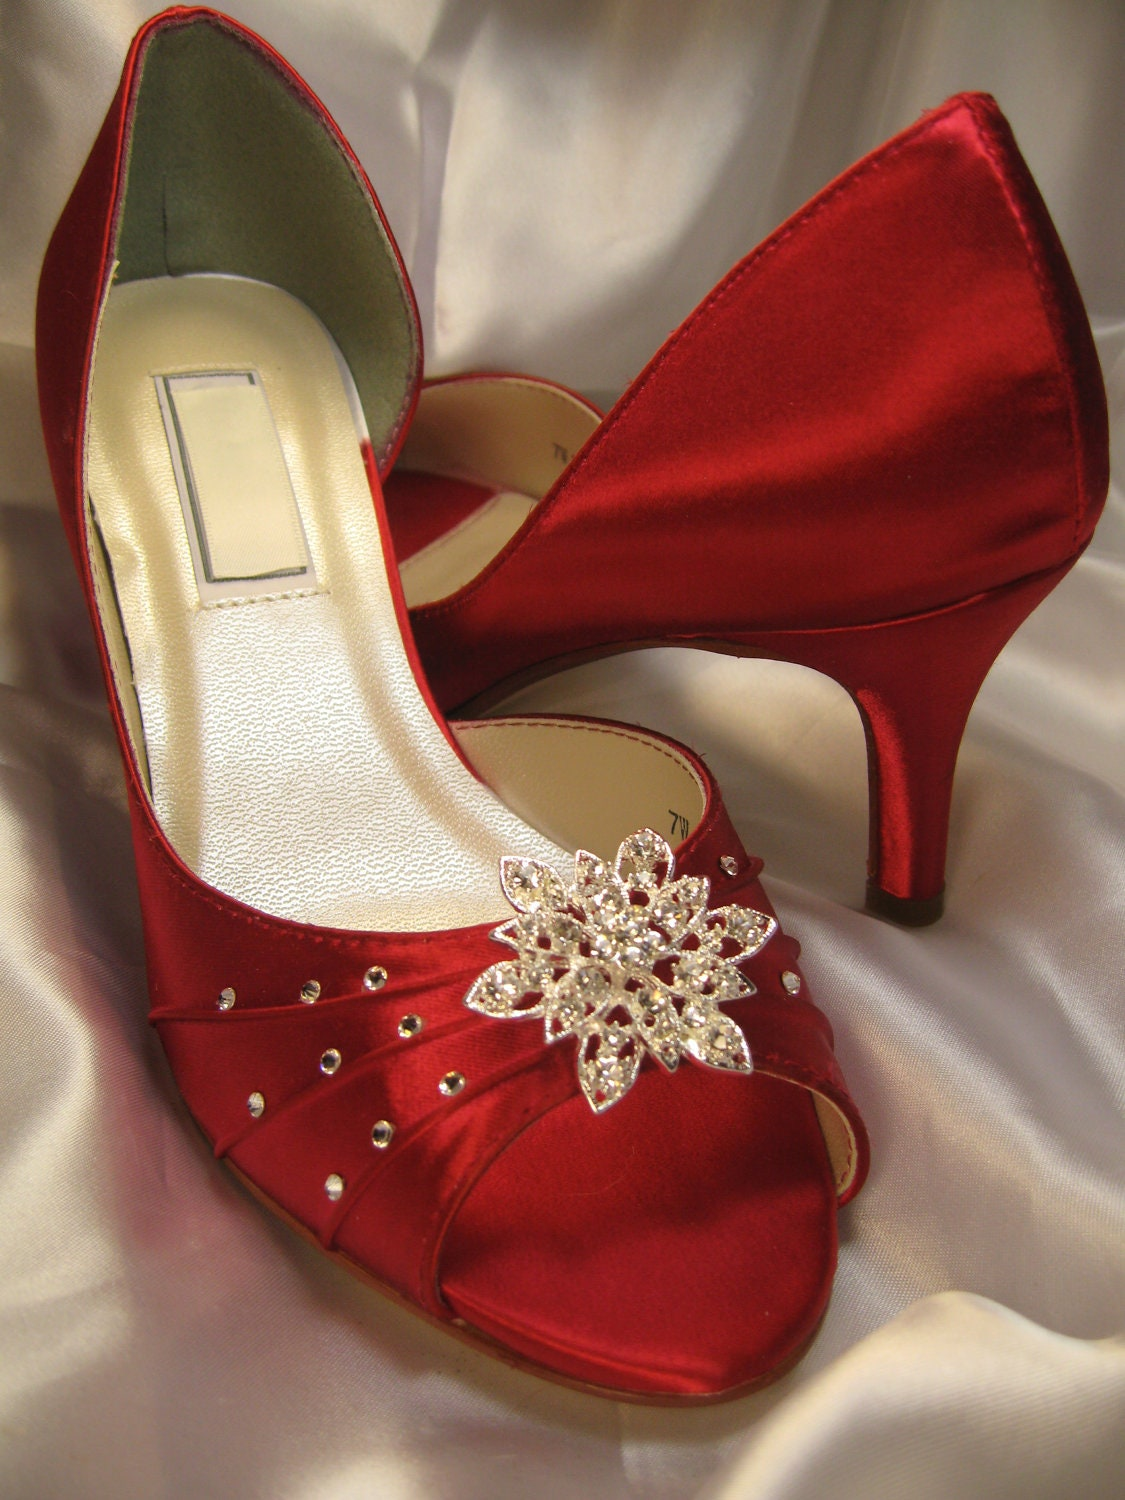 Low Heel Red Wedding Shoes - Is Heel